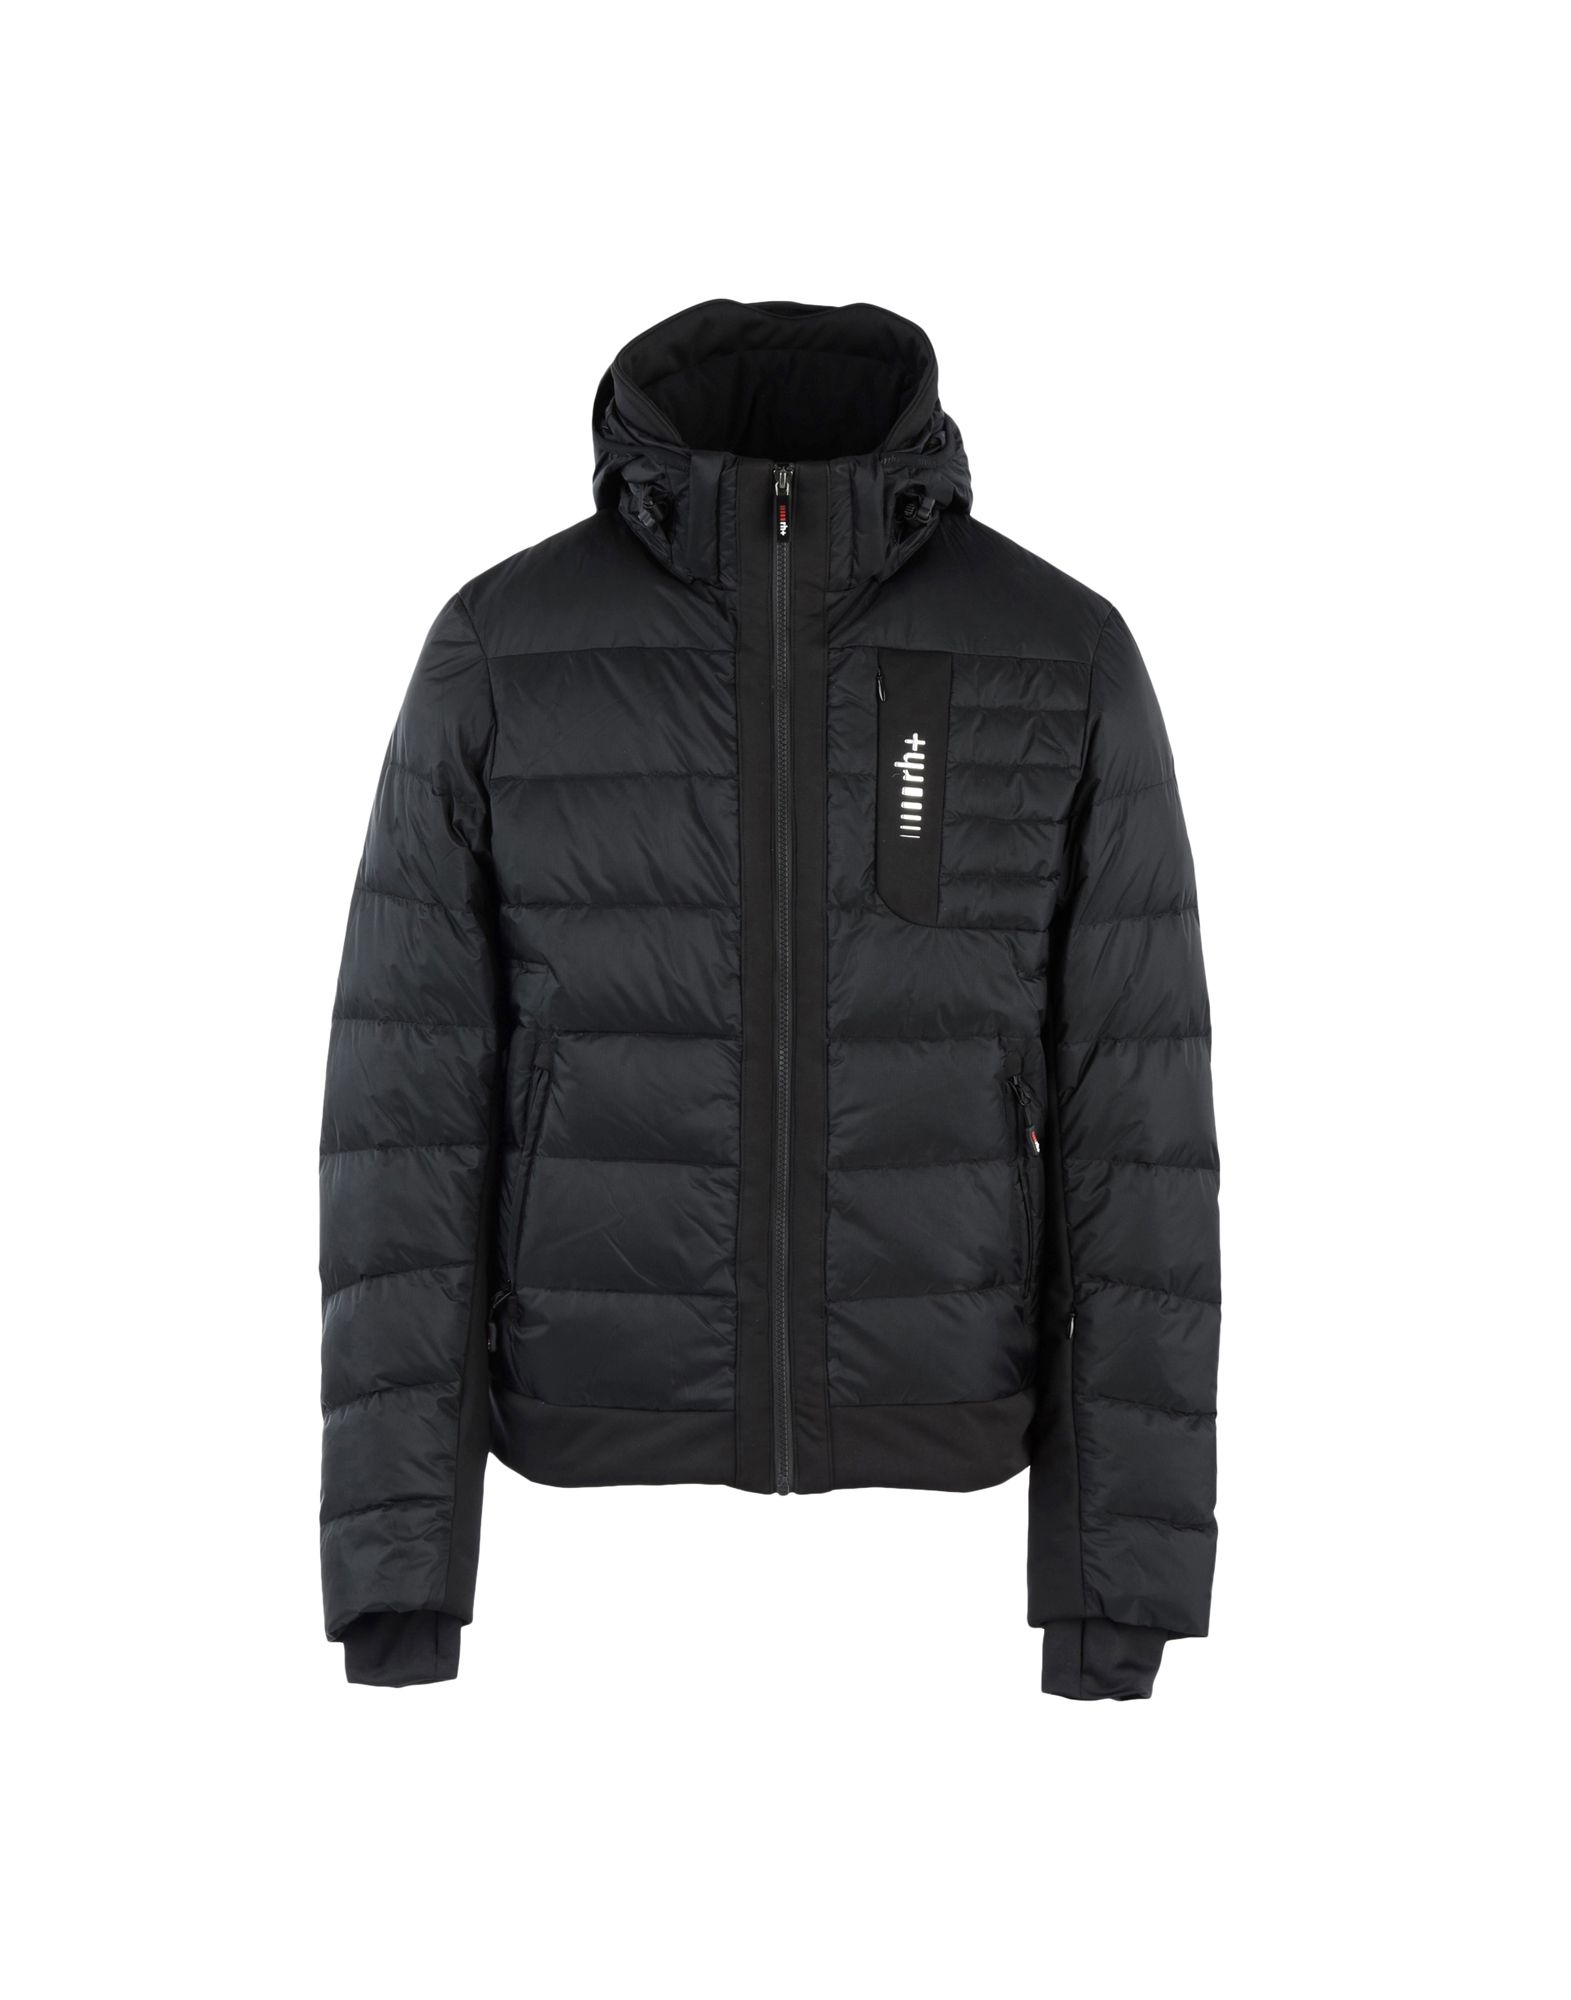 Piumino Rh+ Freedom Ii Down Jacket - Uomo - Acquista online su